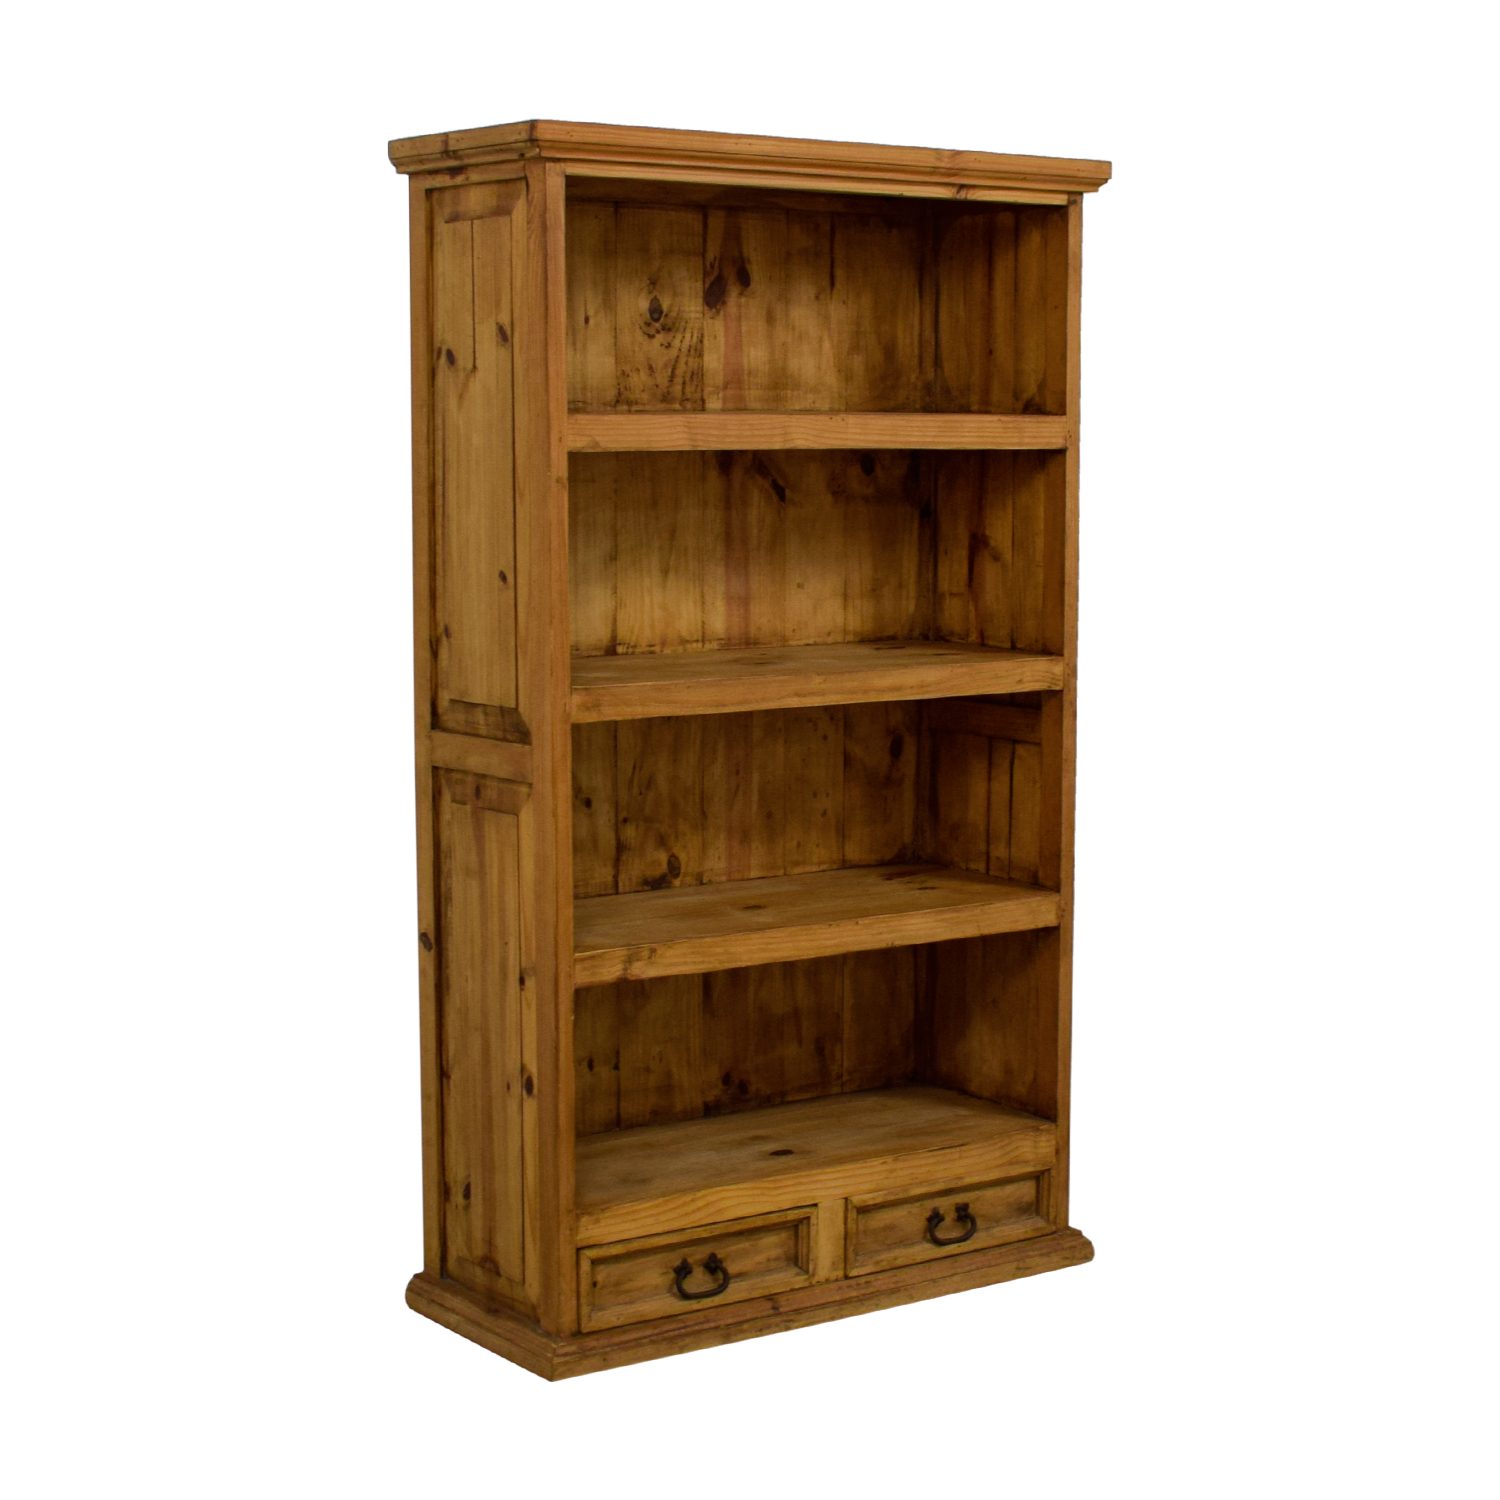 Natural Rustic Wood Bookshelf with Two-Drawers for sale